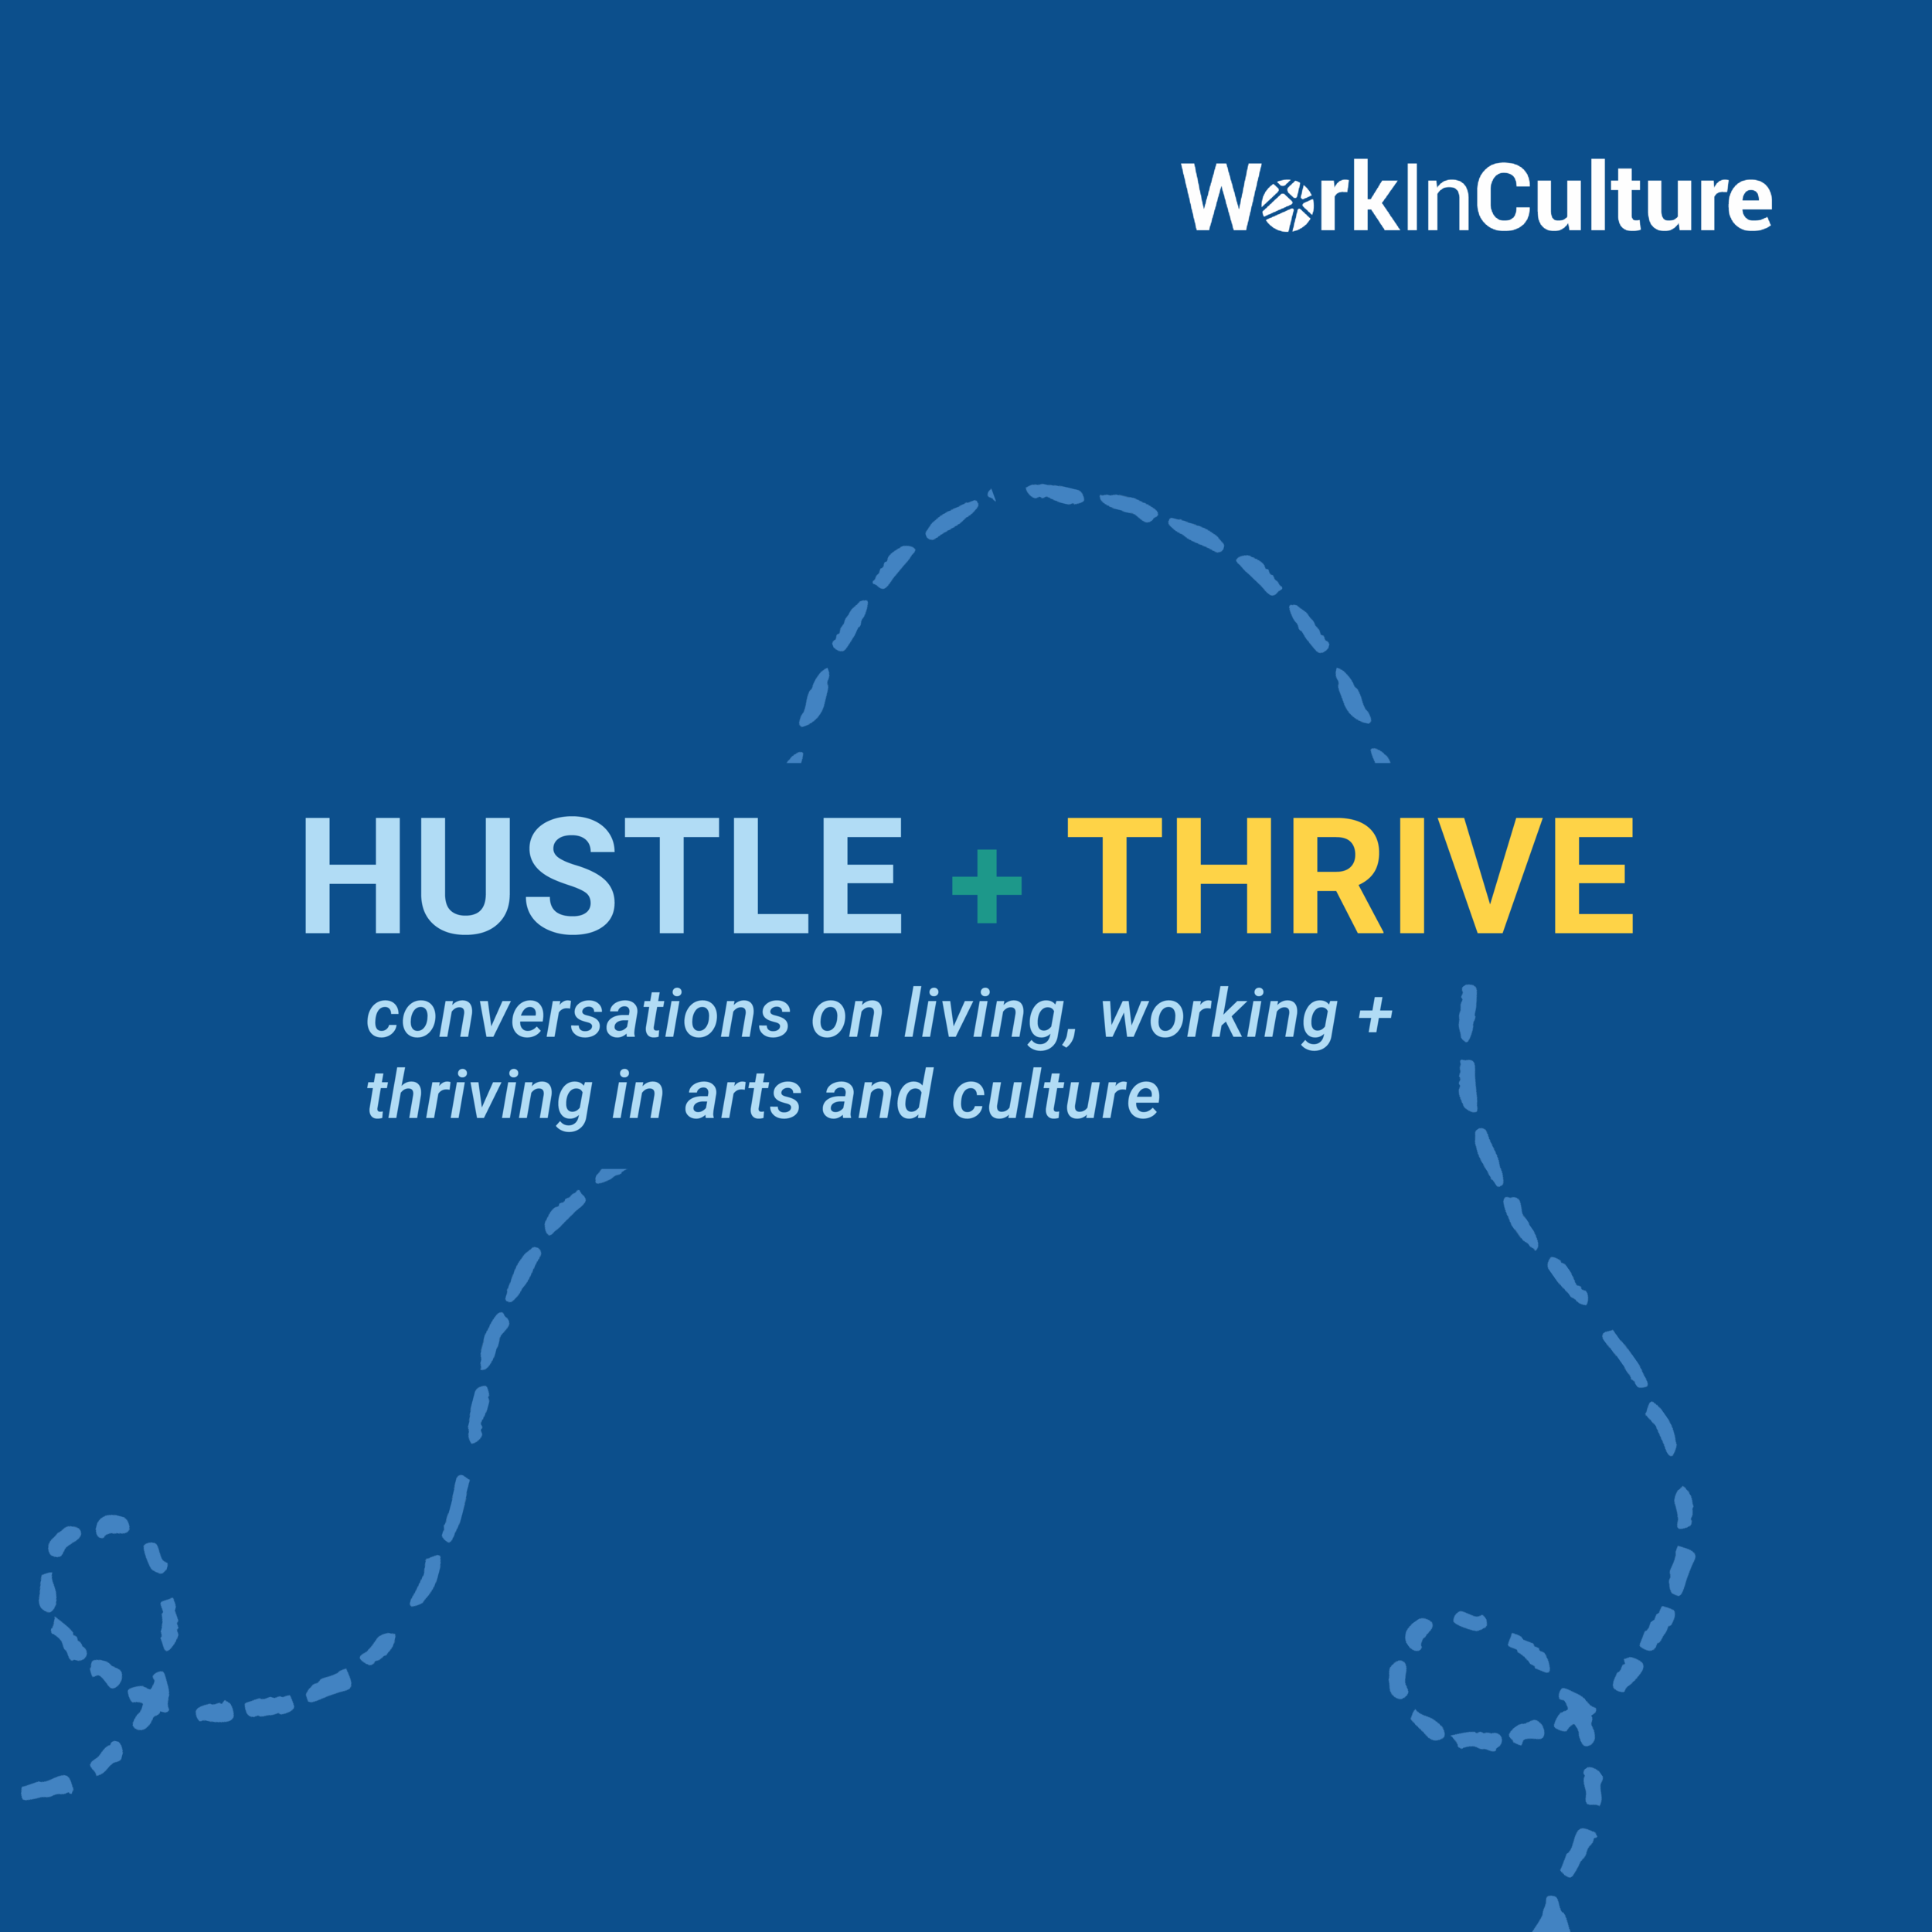 HUSTLE + THRIVE visual identity.png